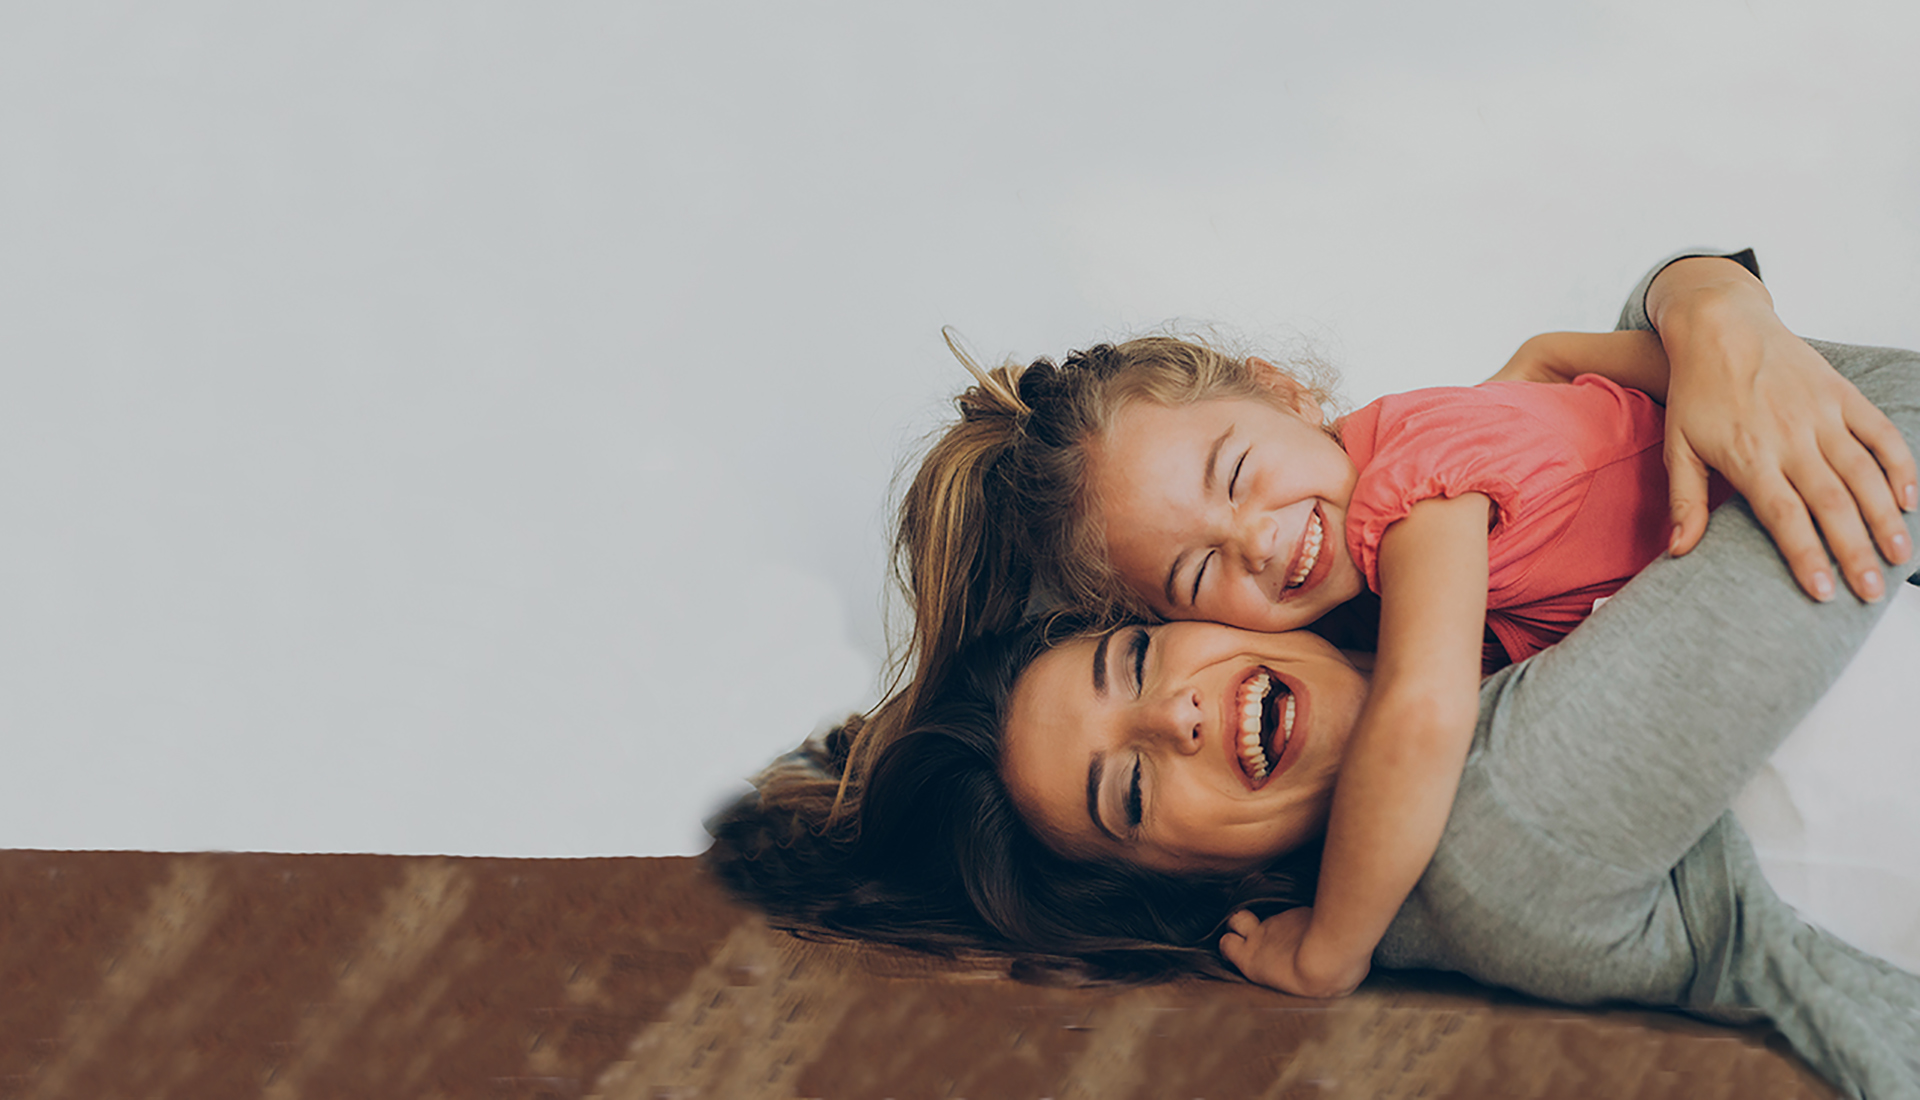 mother and daughter play on floor thanks to spine surgery with Dr. Soldevilla portland